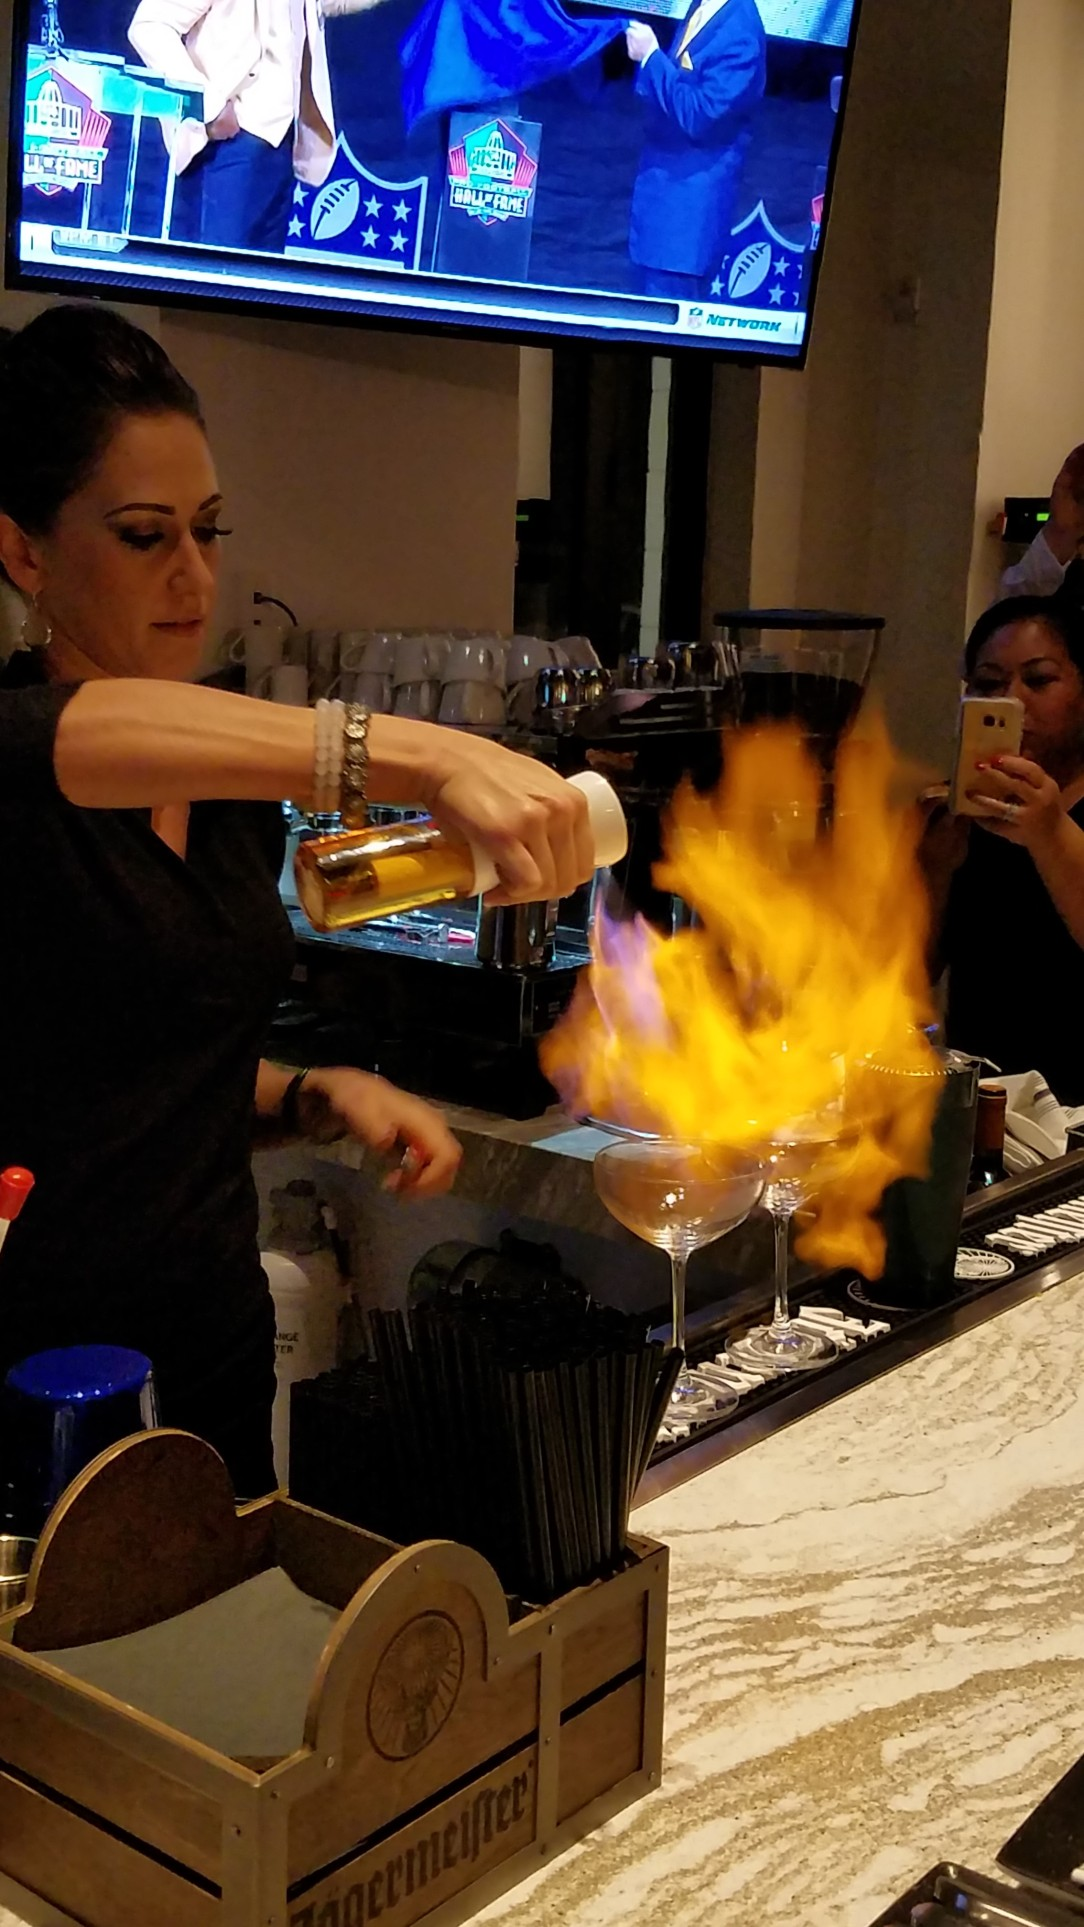 We're getting a first-hand demonstration of how to make the cocktail Dante's Inferno